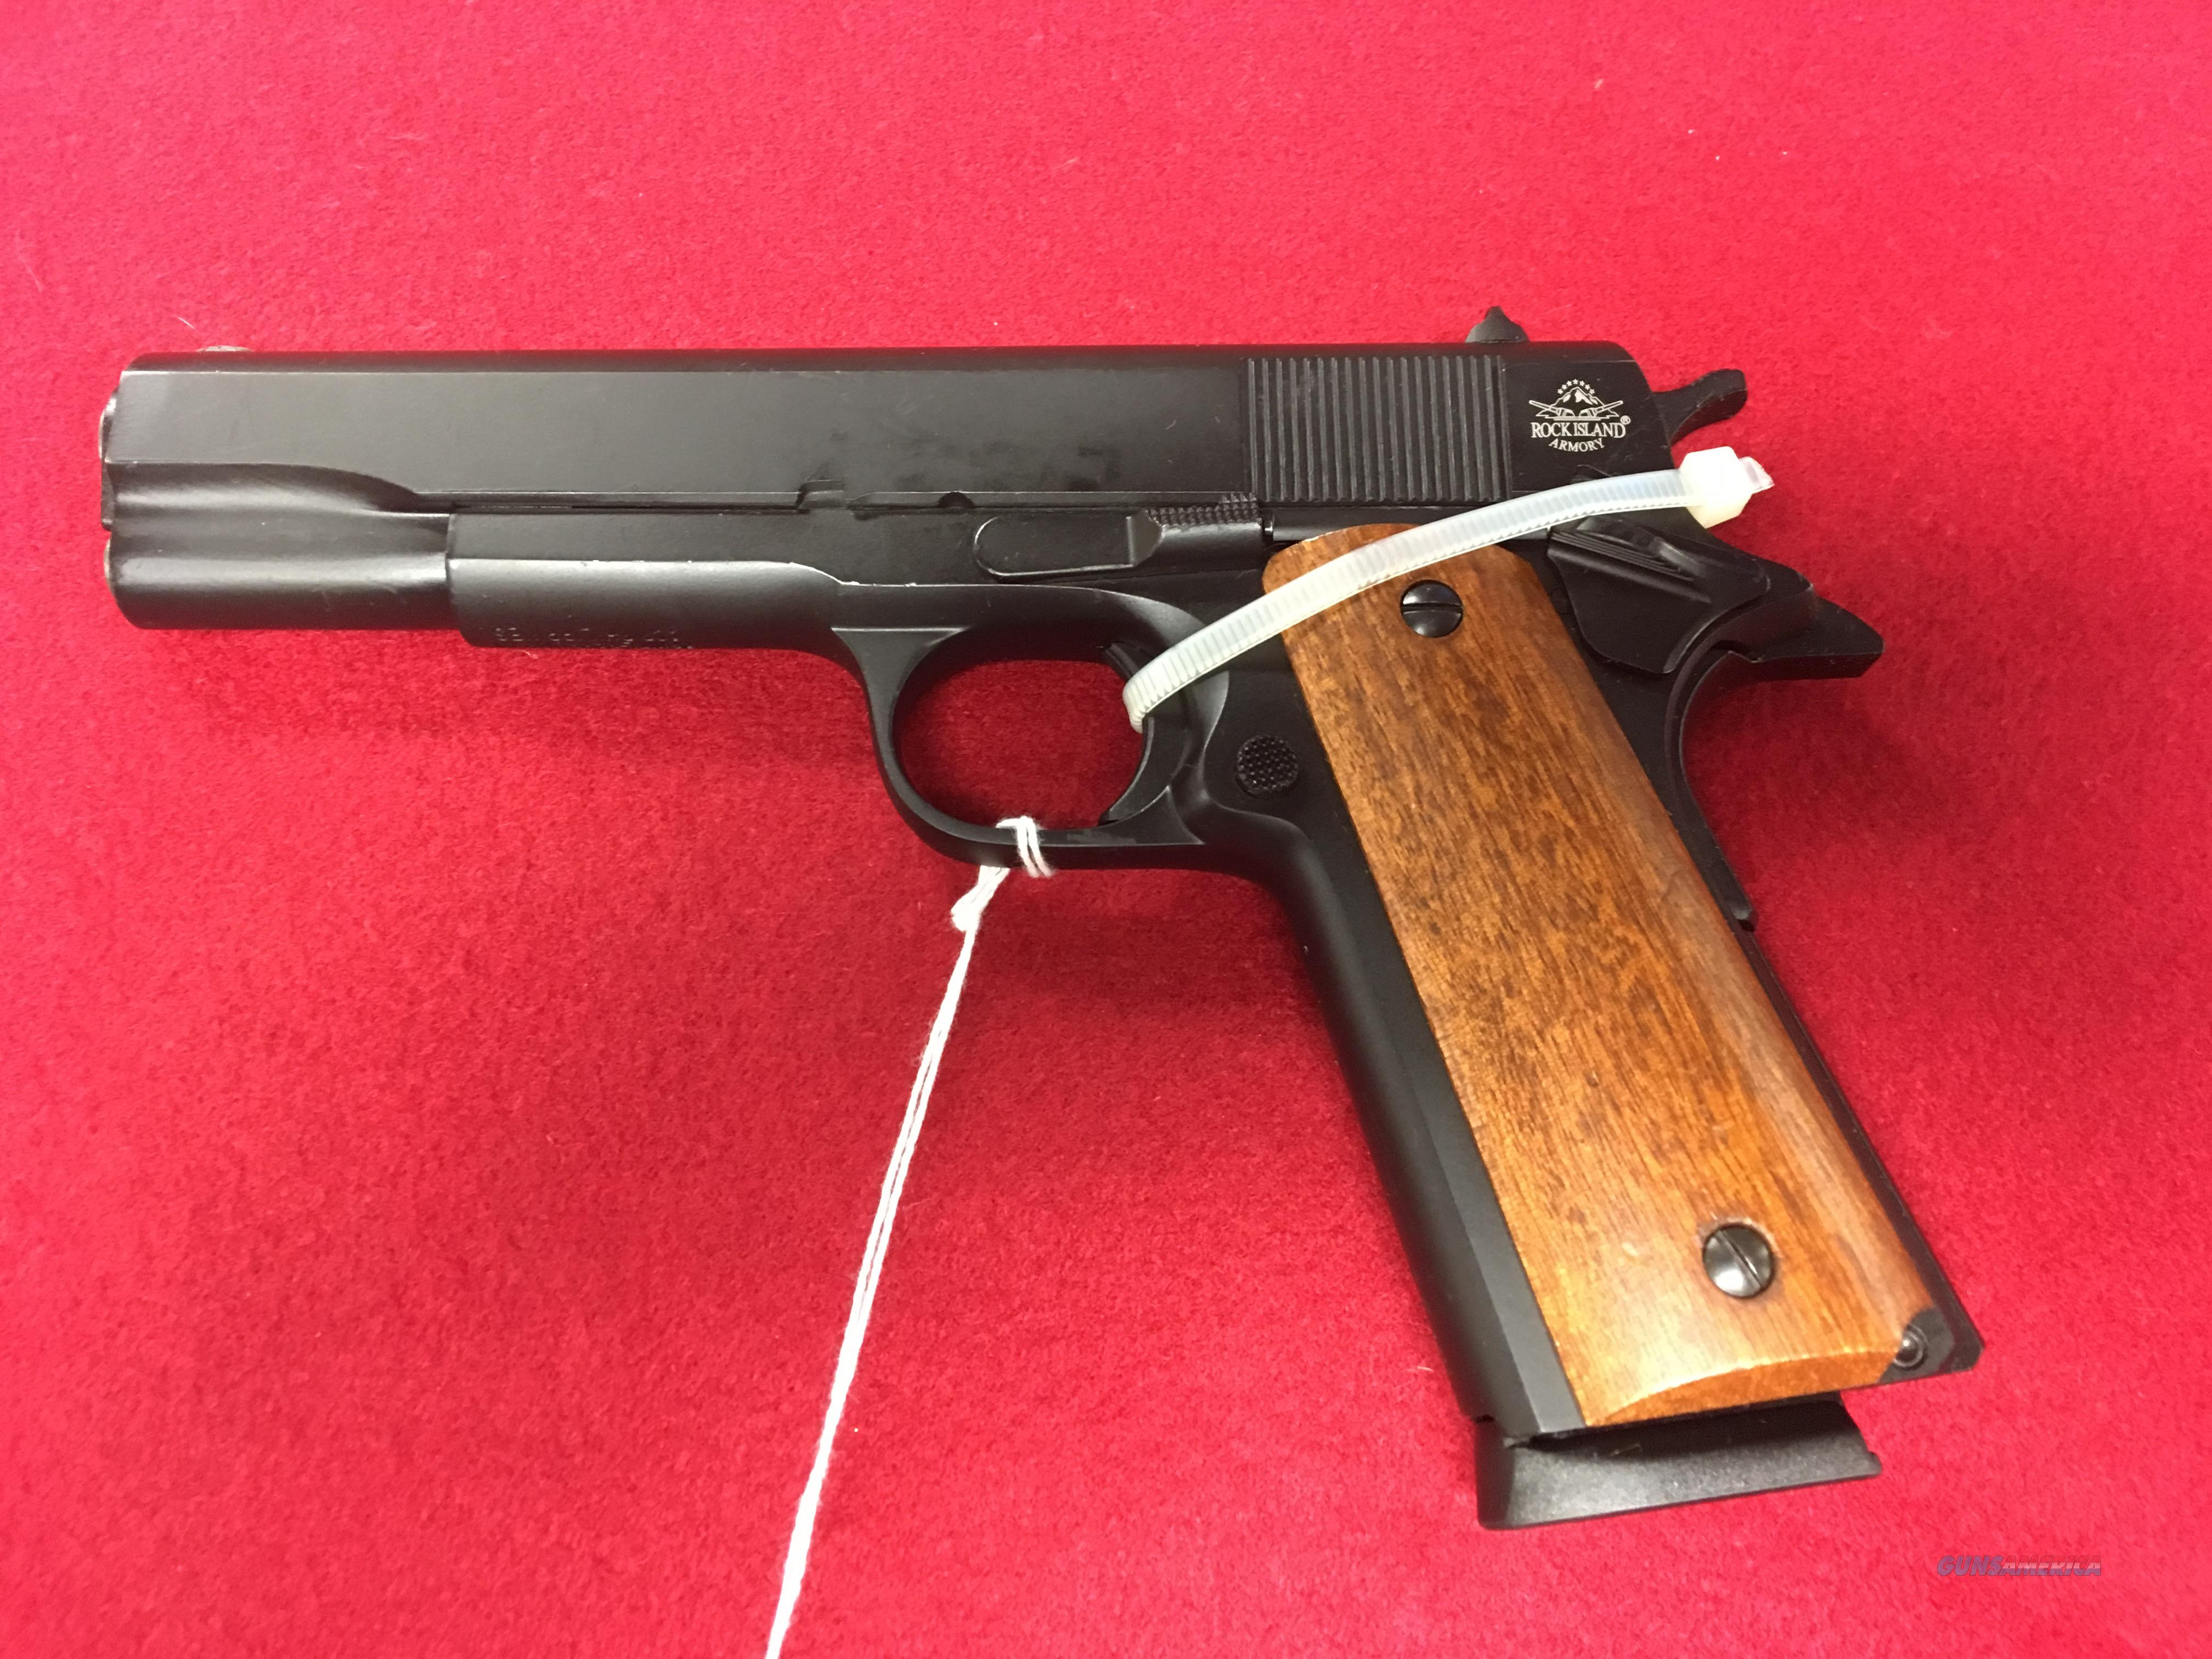 ROCK ISLAND ARMORY 45 ACP BLACK DURACOAT FINISH NEW  Guns > Pistols > Armscor Pistols > Rock Island